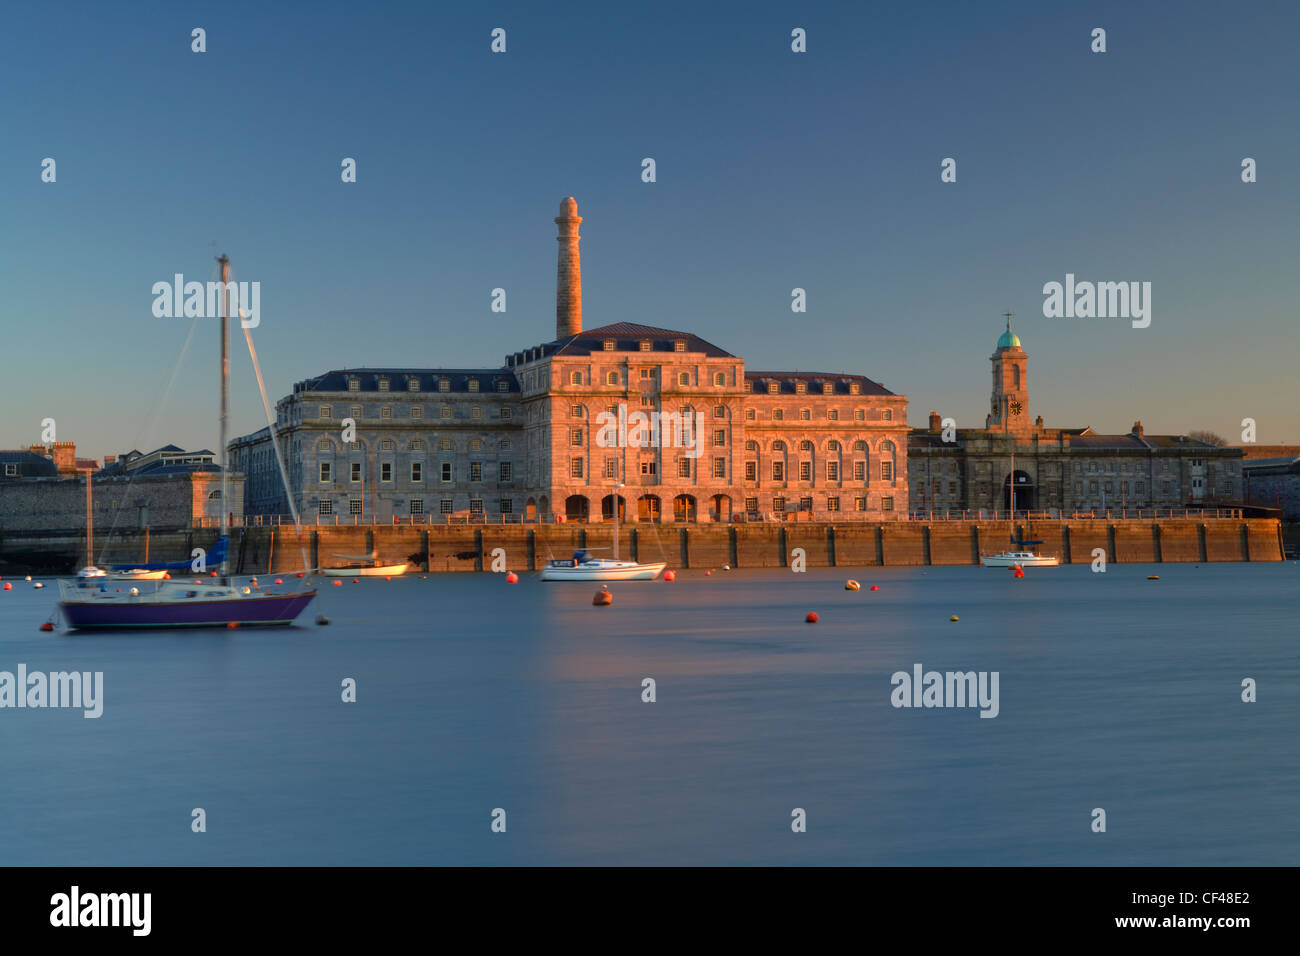 Low evening sunlight illuminating the facade of the Royal William Yard building in Plymouth. - Stock Image